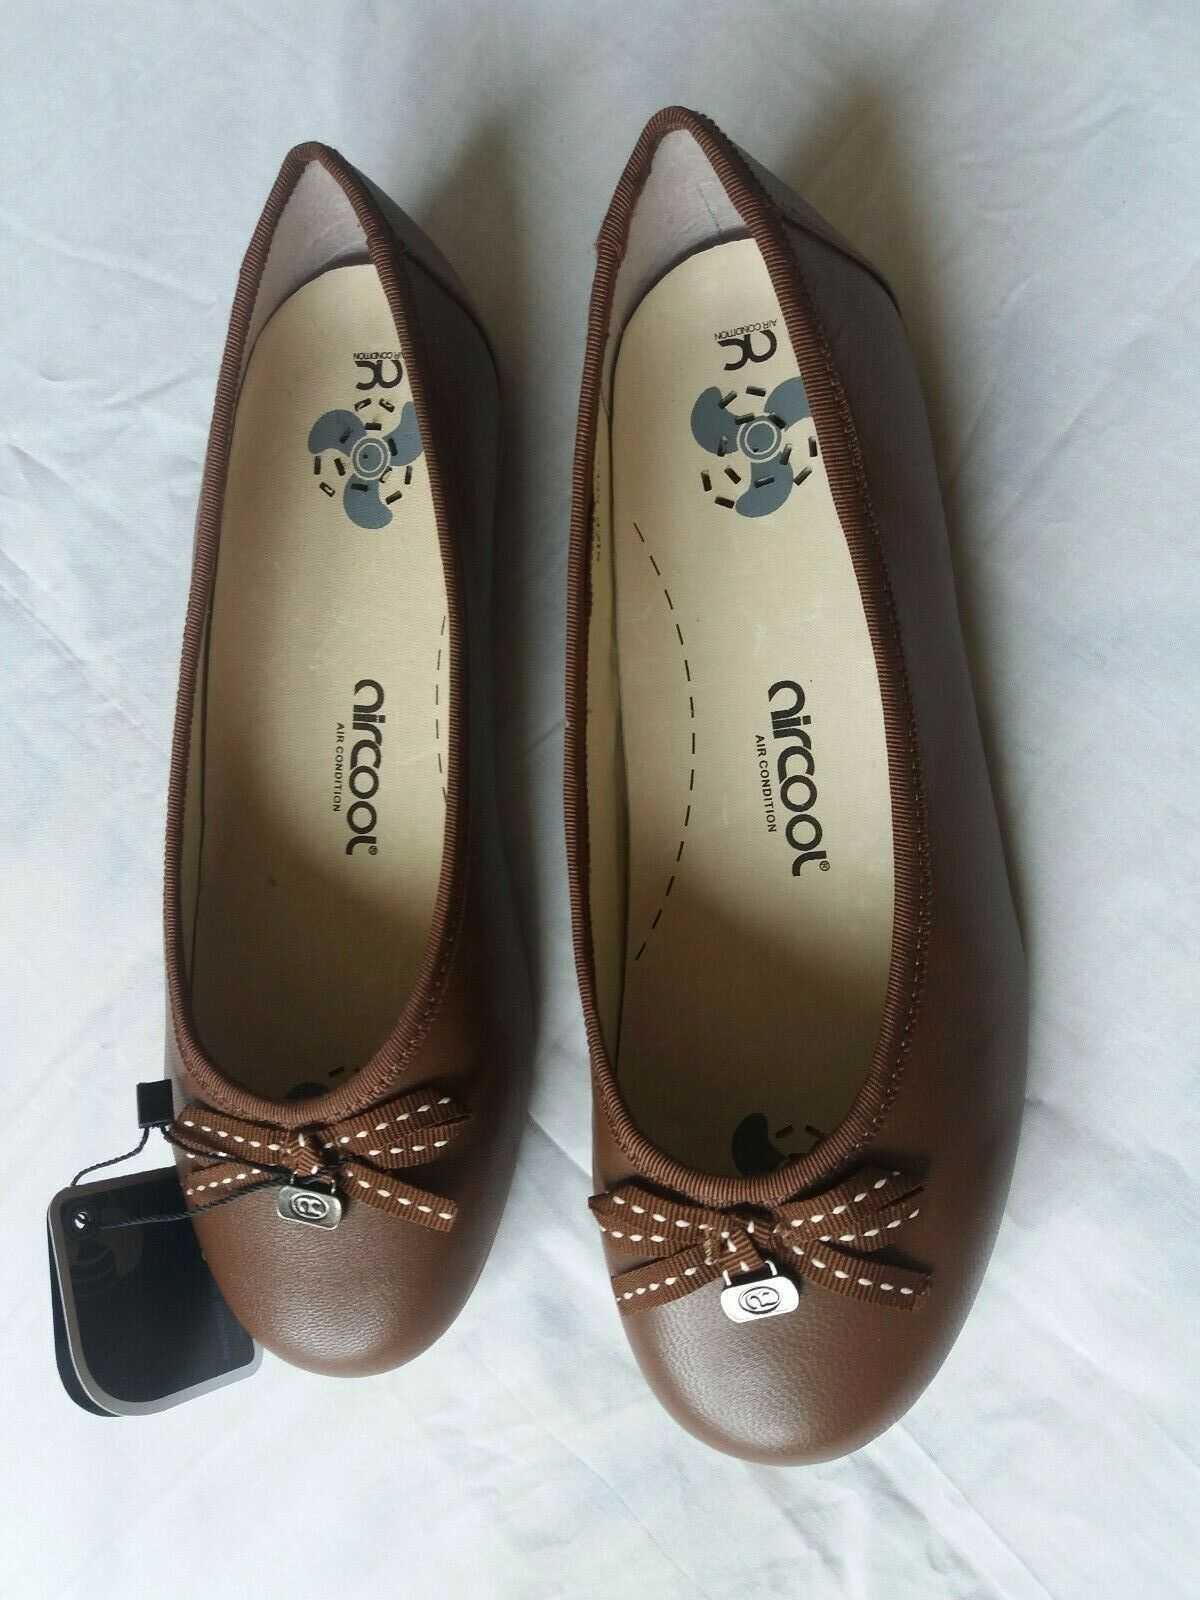 Brand New Aircool Ballerina shoes UK Size 6 Fit EEE